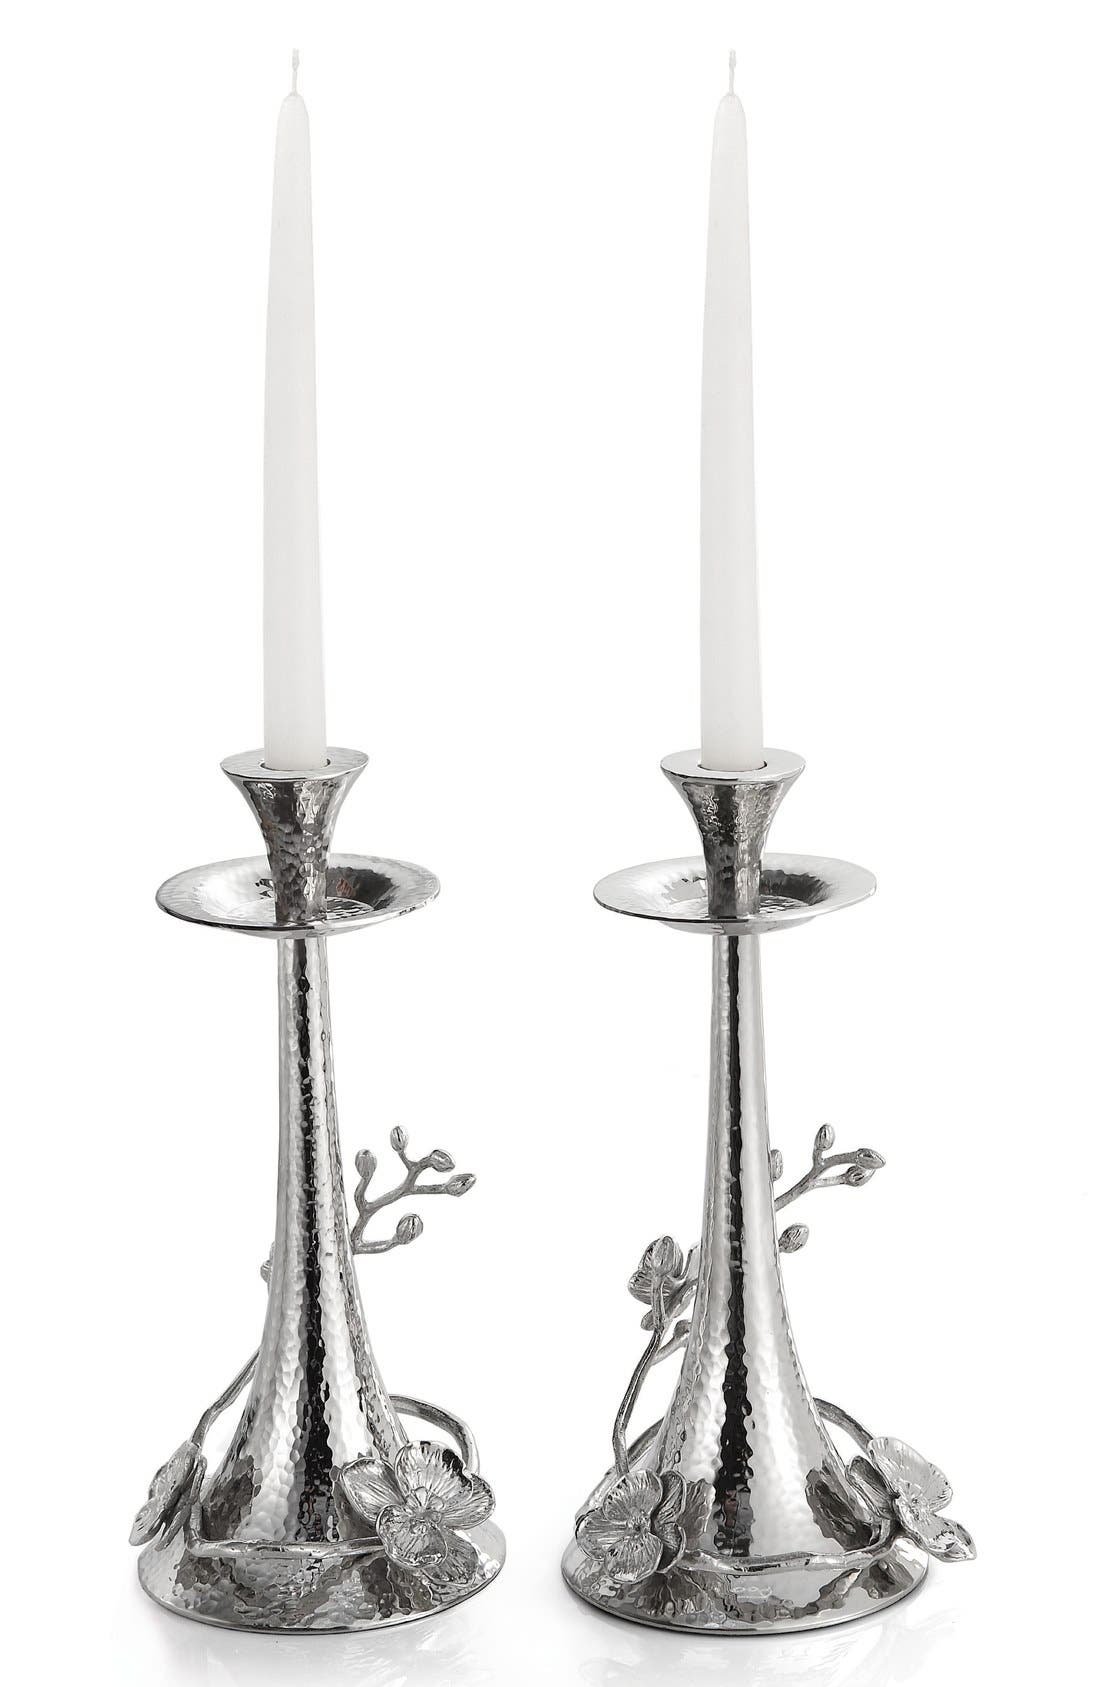 Alternate Image 1 Selected - Michael Aram 'White Orchid' Candle Holders (Set of 2)